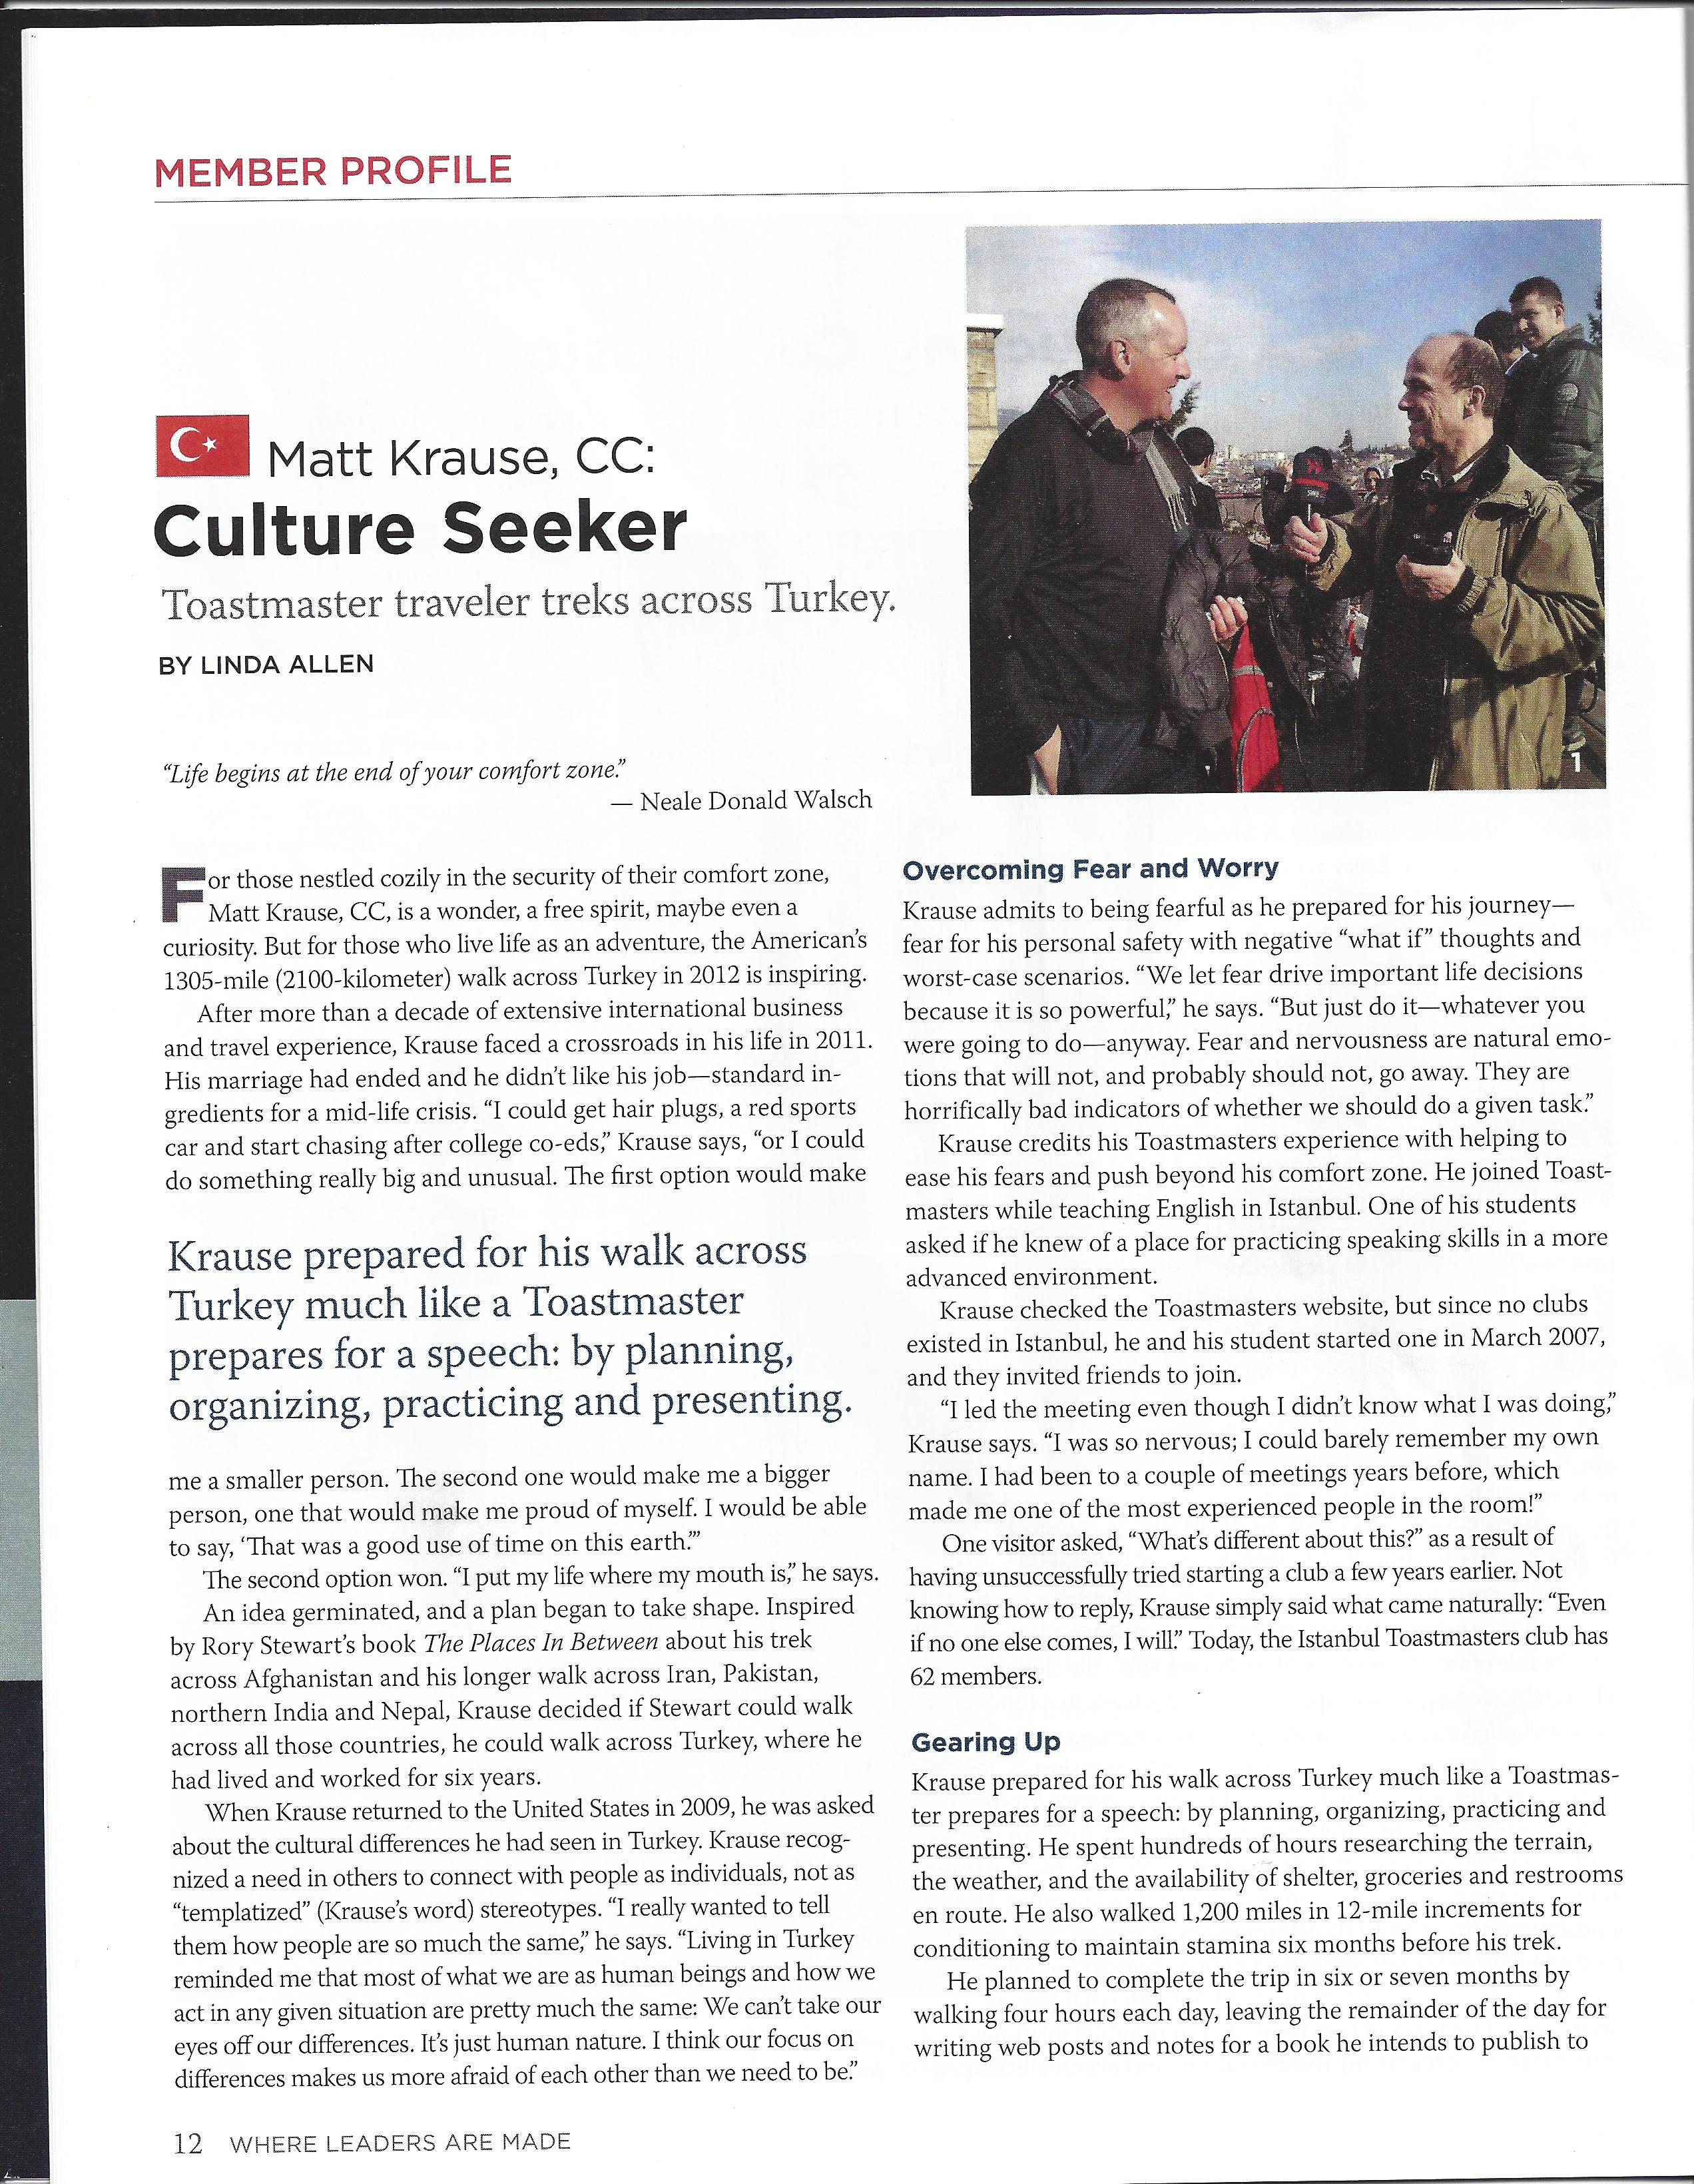 Toastmaster magazine, May 2014 issue, page 1 of 2